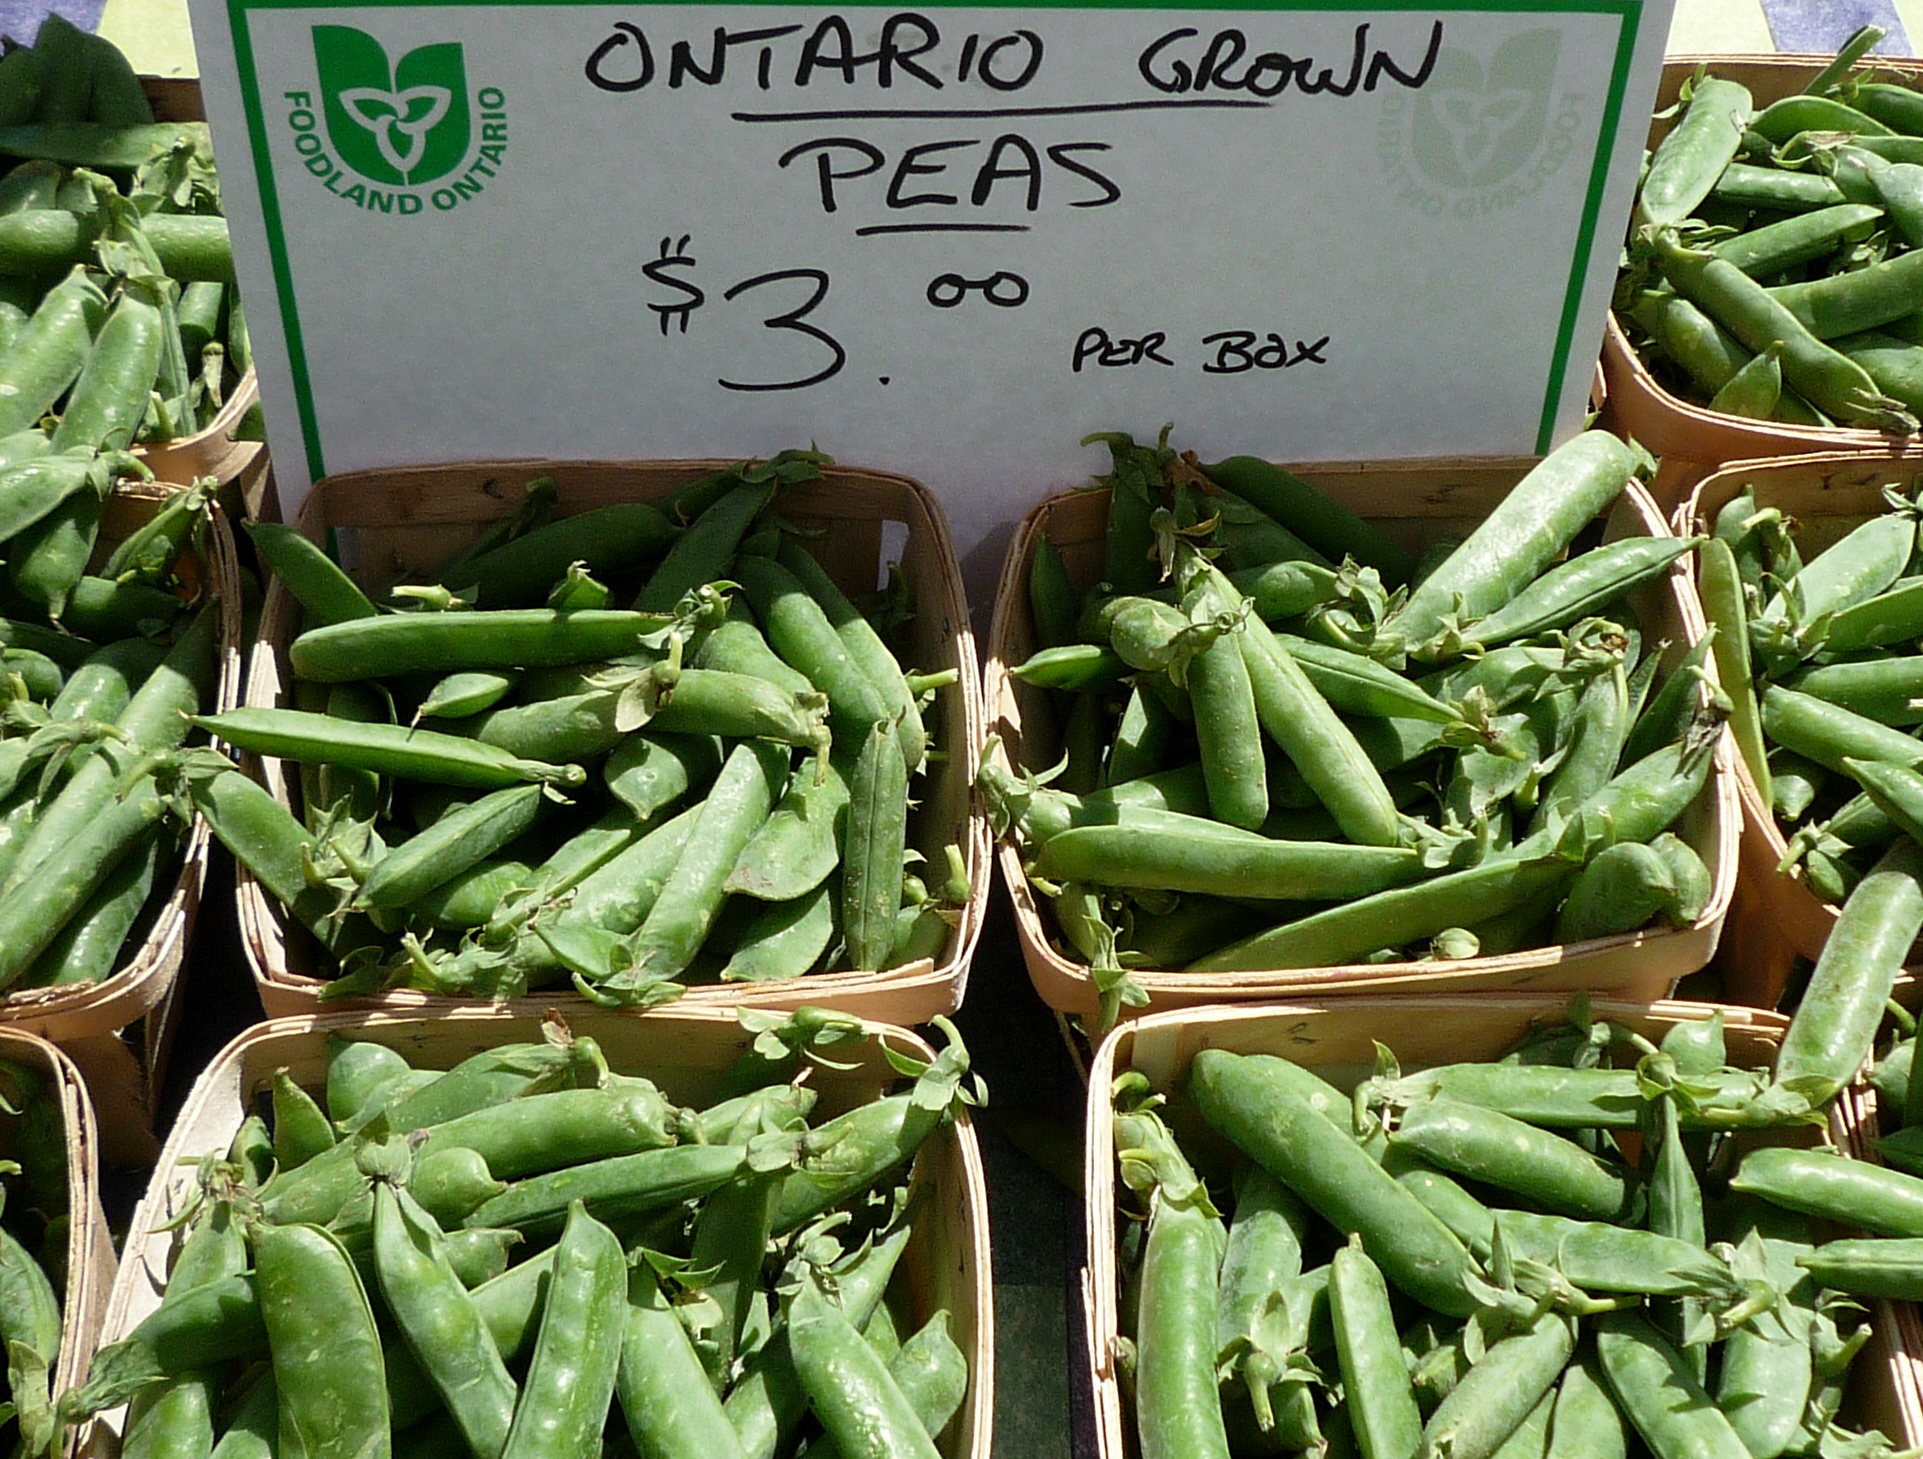 Sweet local peas are at their peak in July